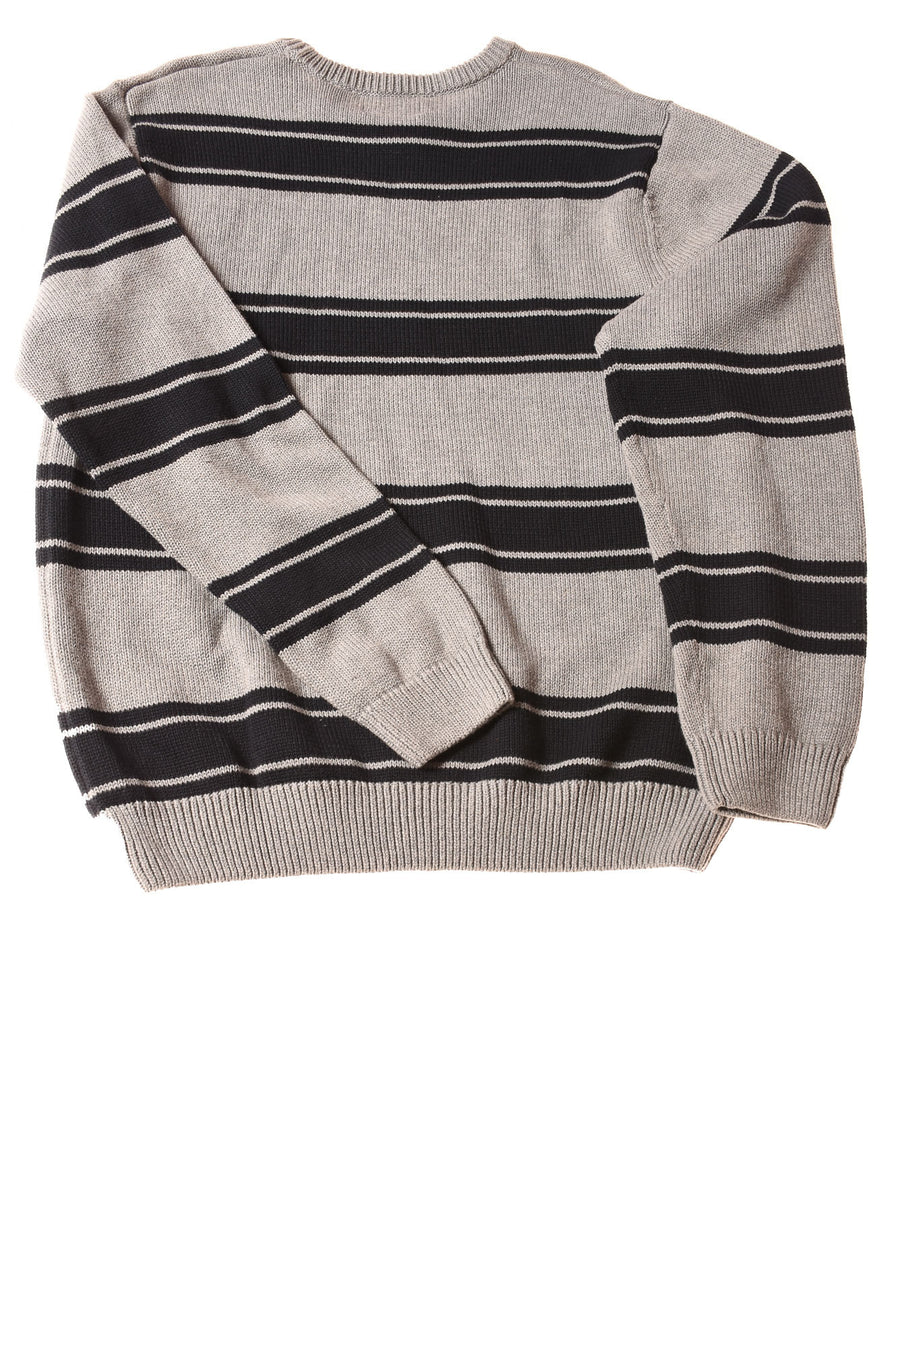 NEW Chaps Men's Sweater Large Gray & Navy / Striped